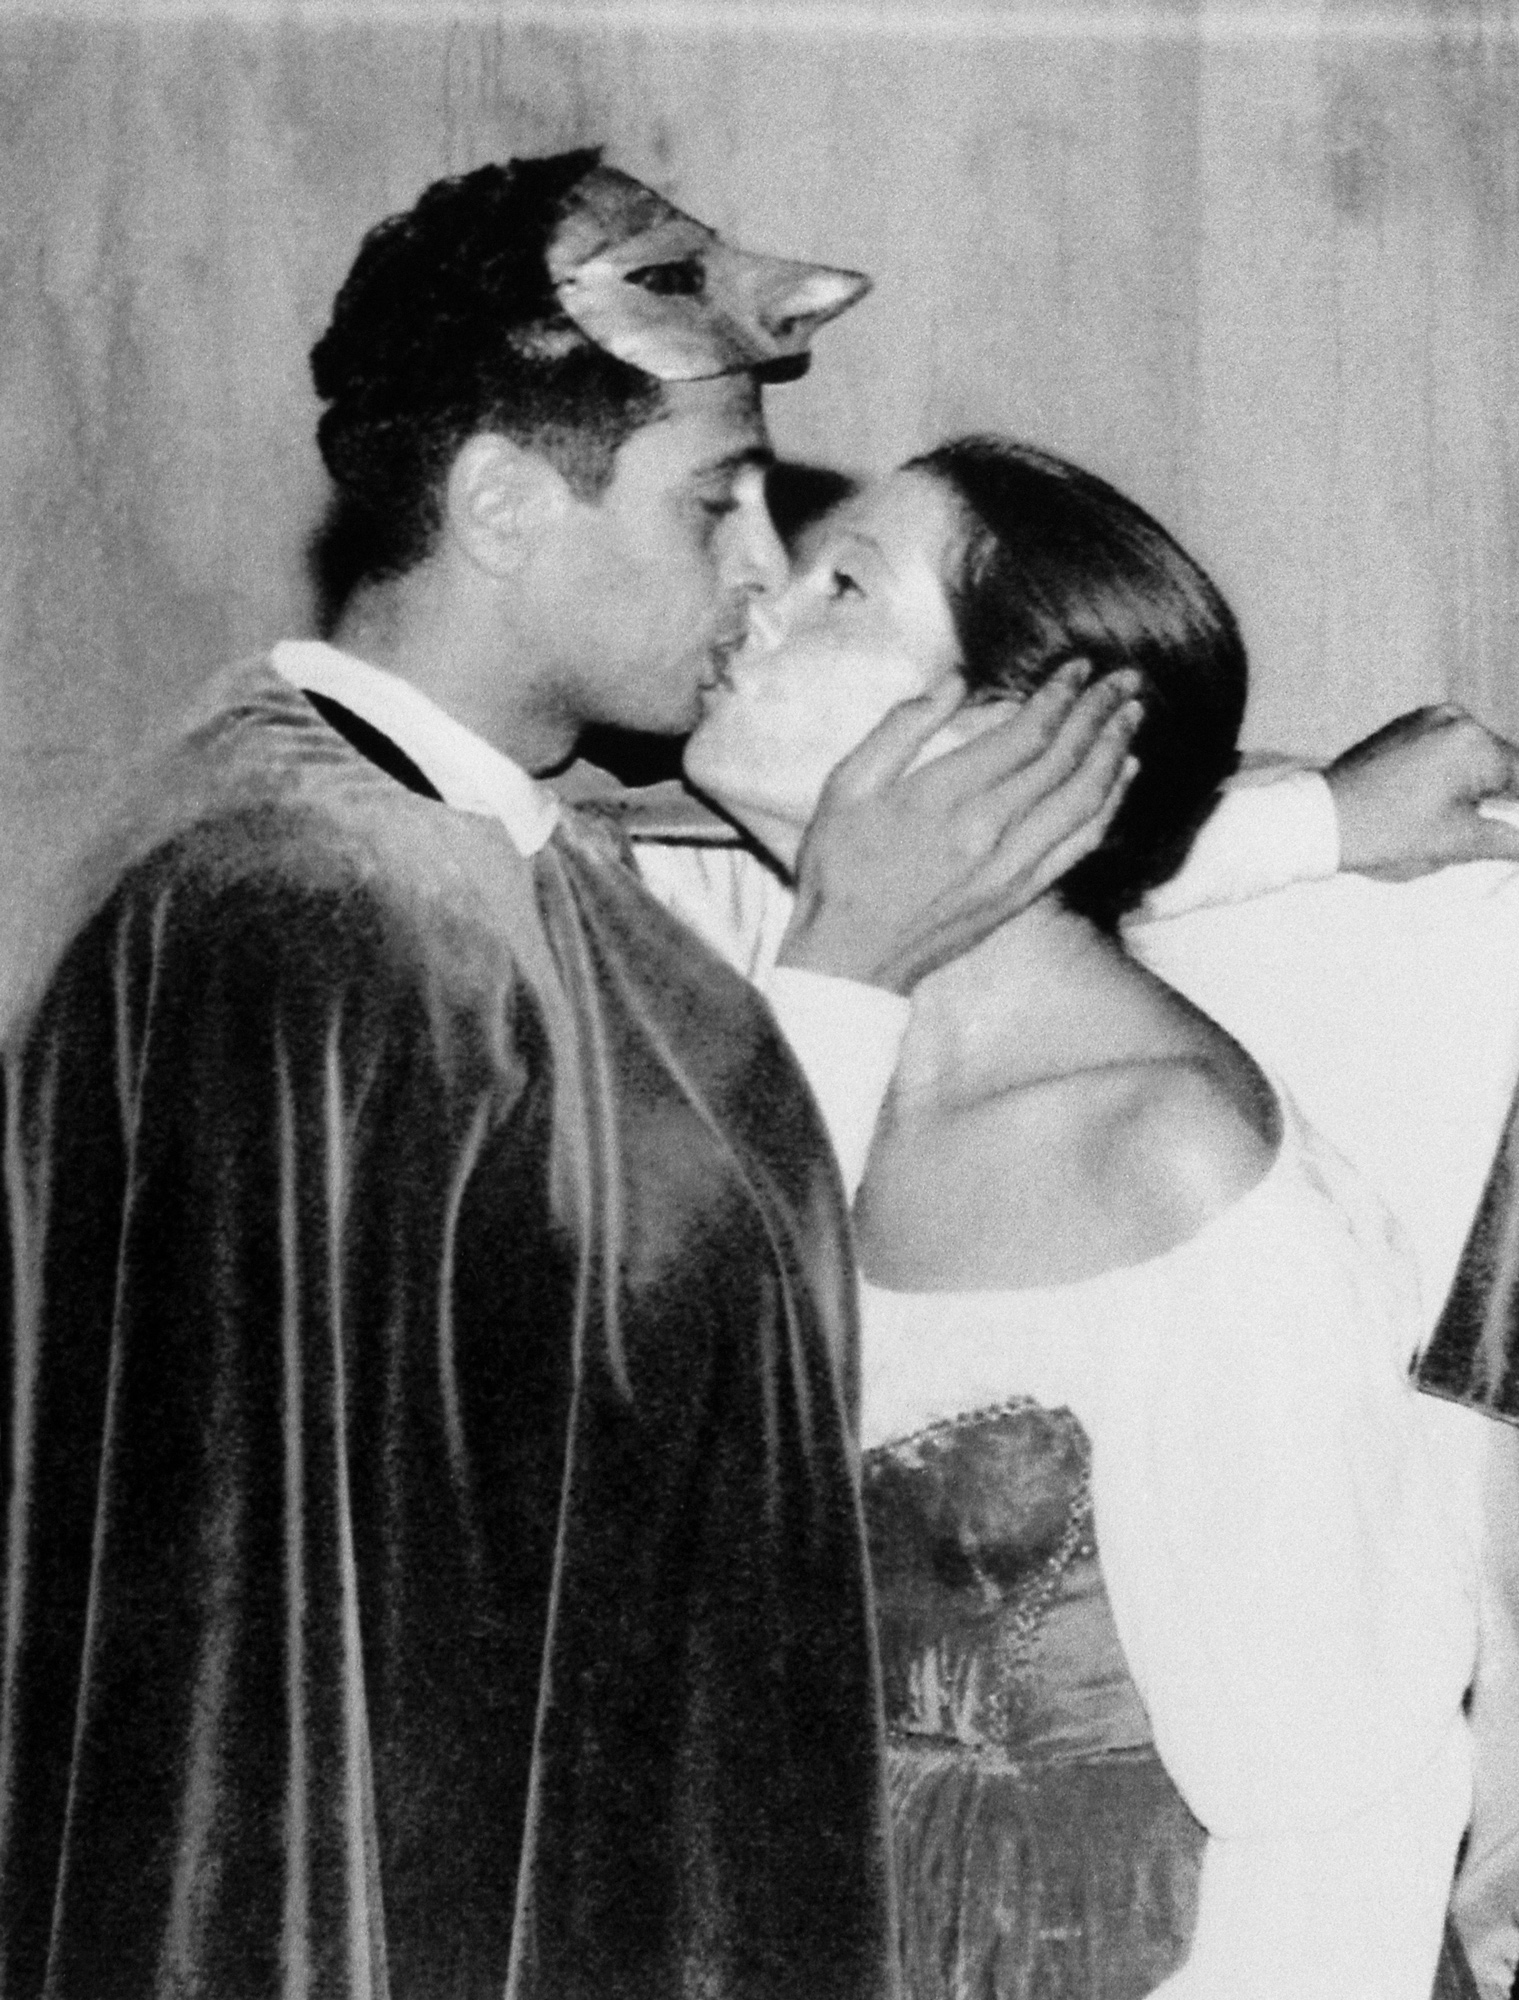 Photograph from a Palestinian-Israeli Romeo and Juliet, 1994